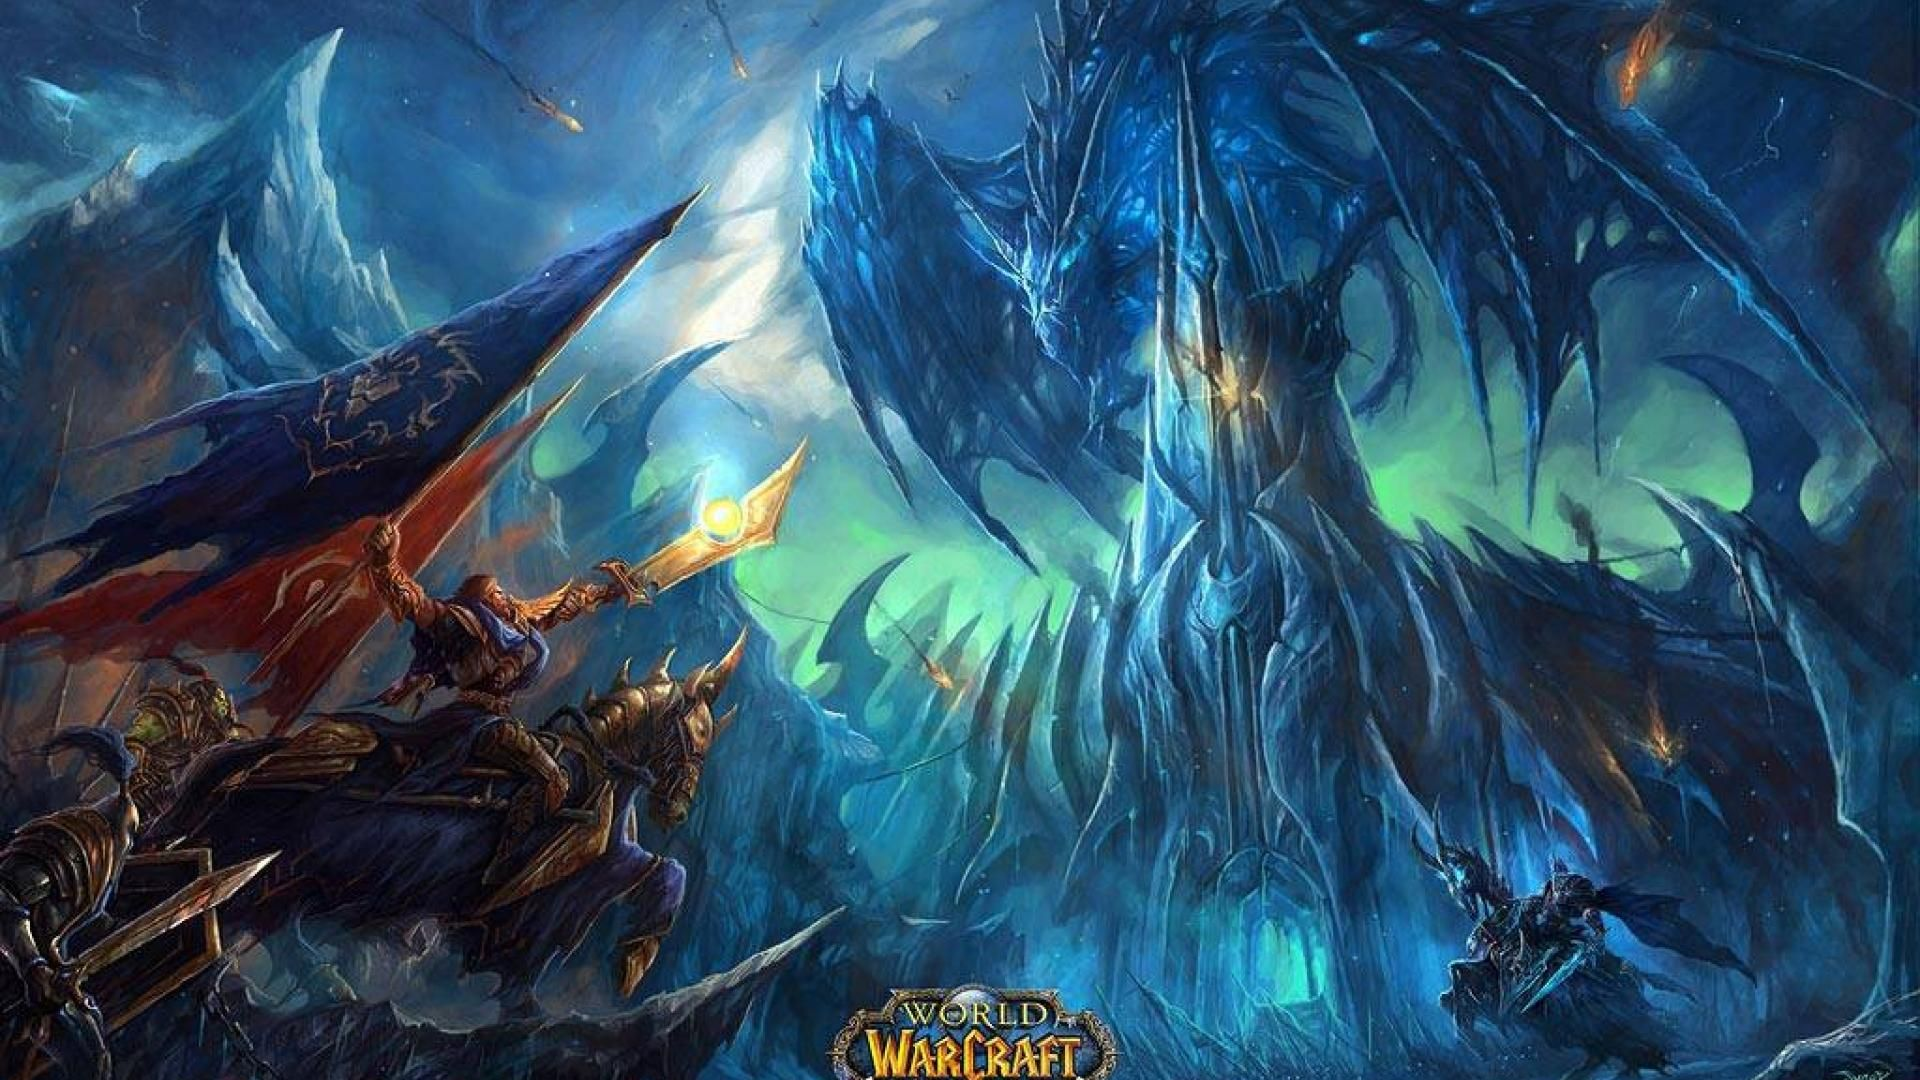 Best Game World Of Warcraft Wallpaper HD 2 High Resolution